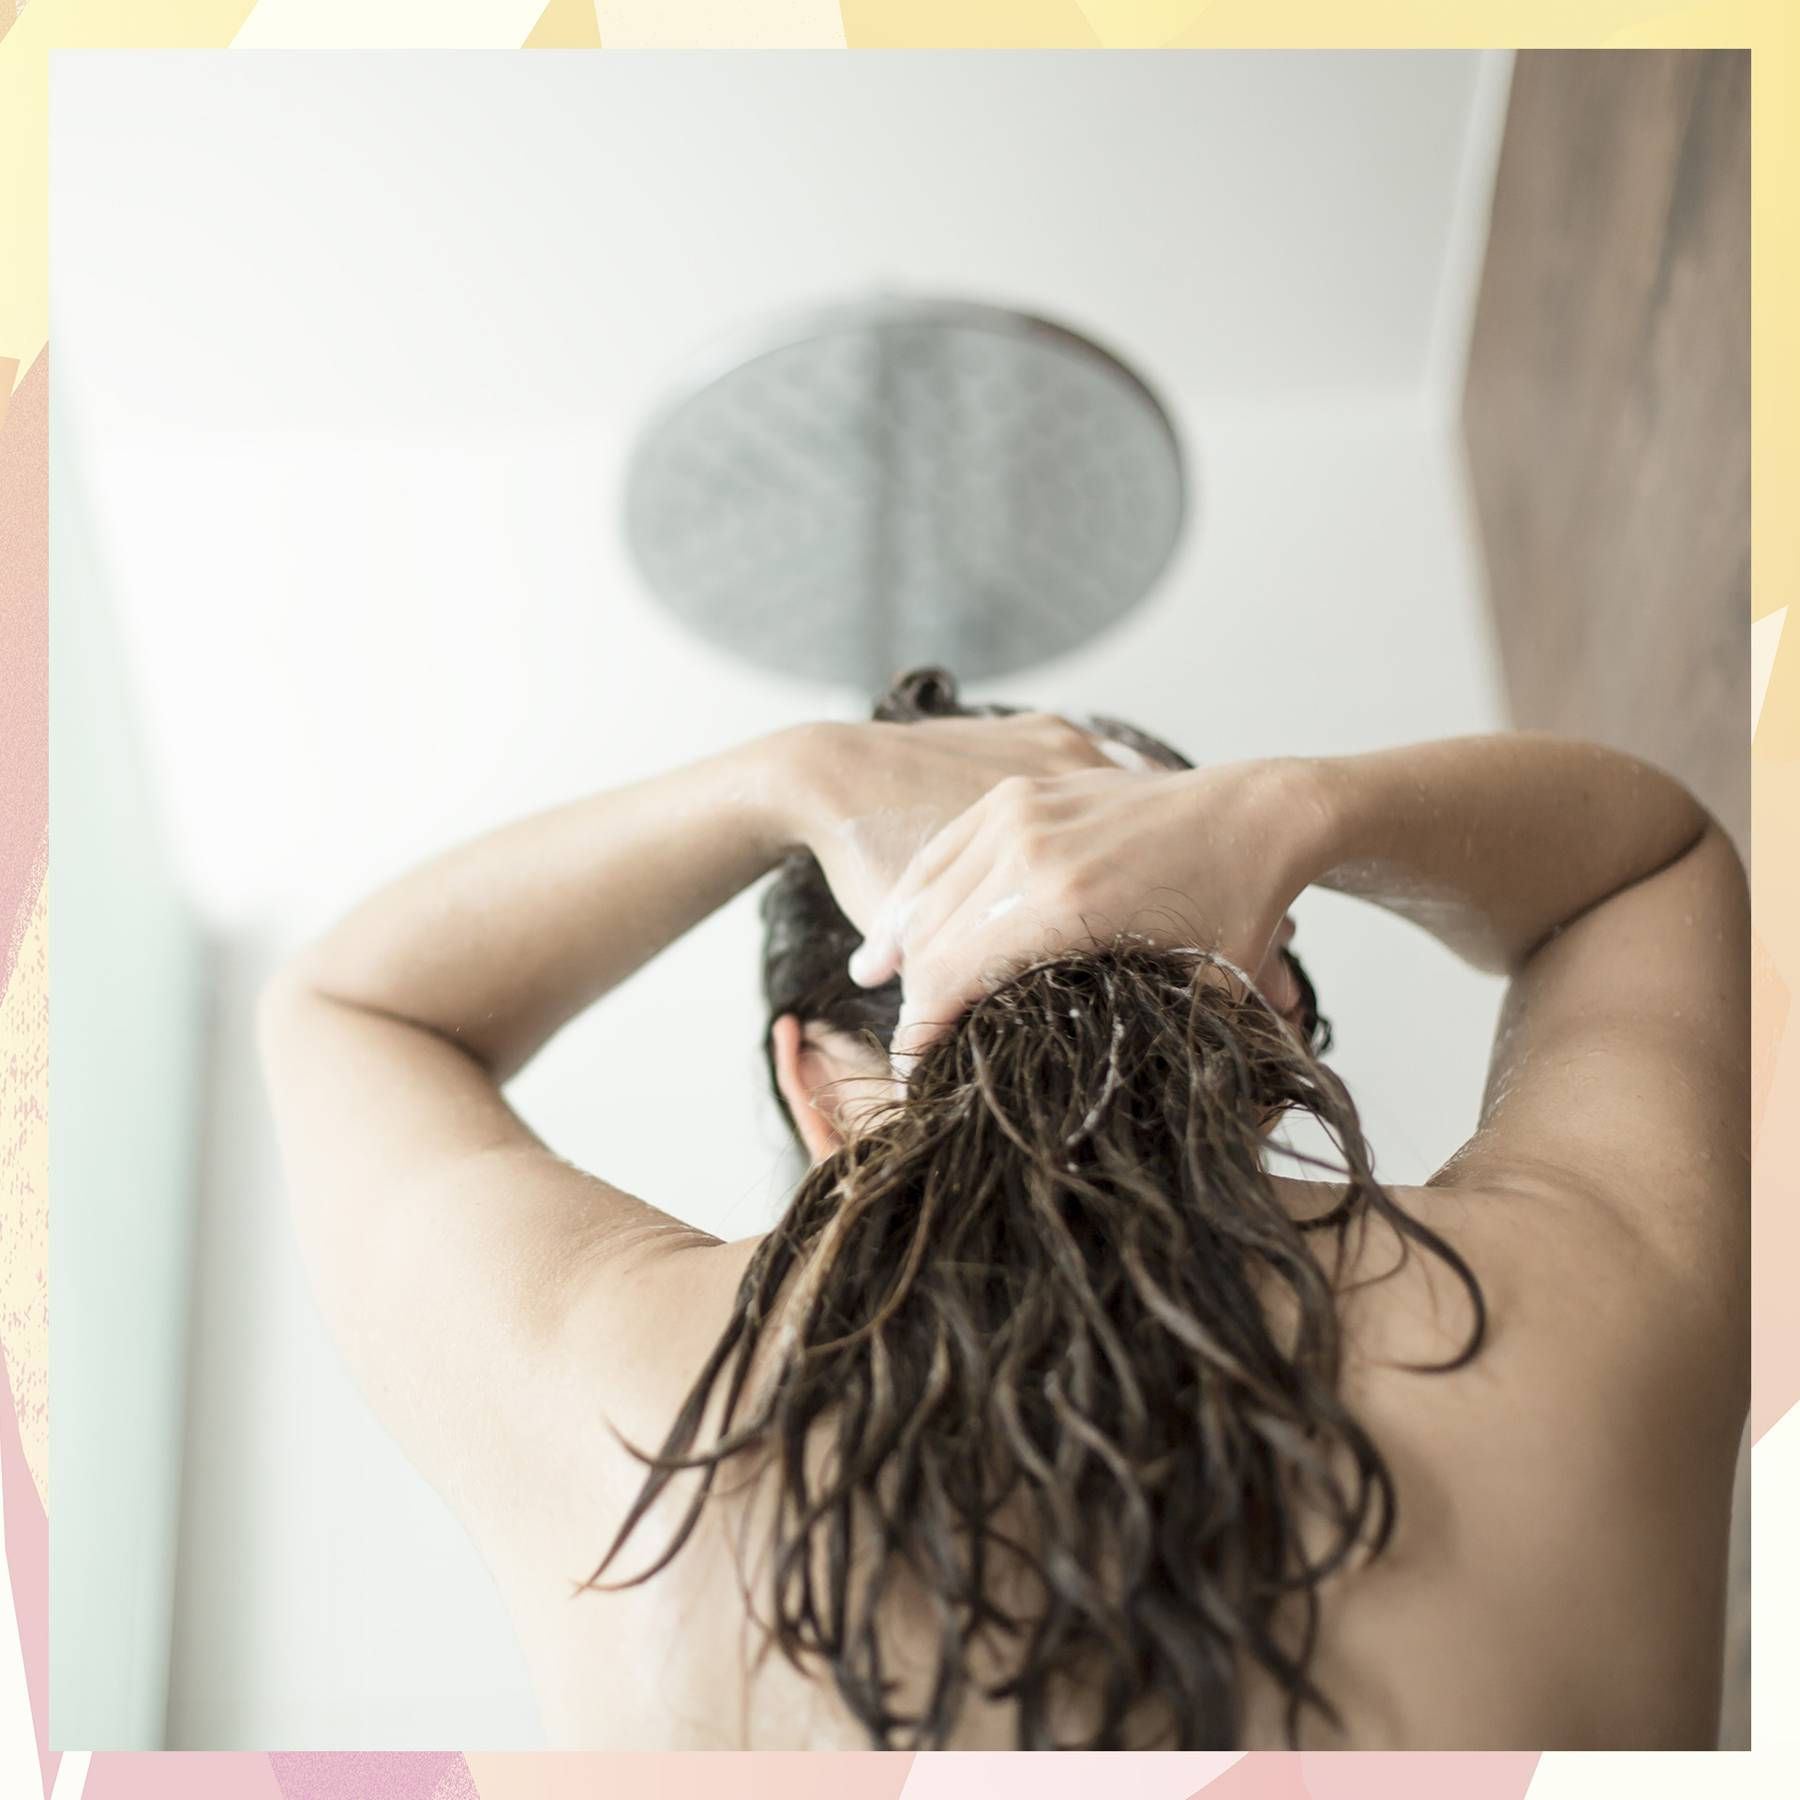 The secret to stopping your hair clogging up the plughole involves completely changing your hair washing regime